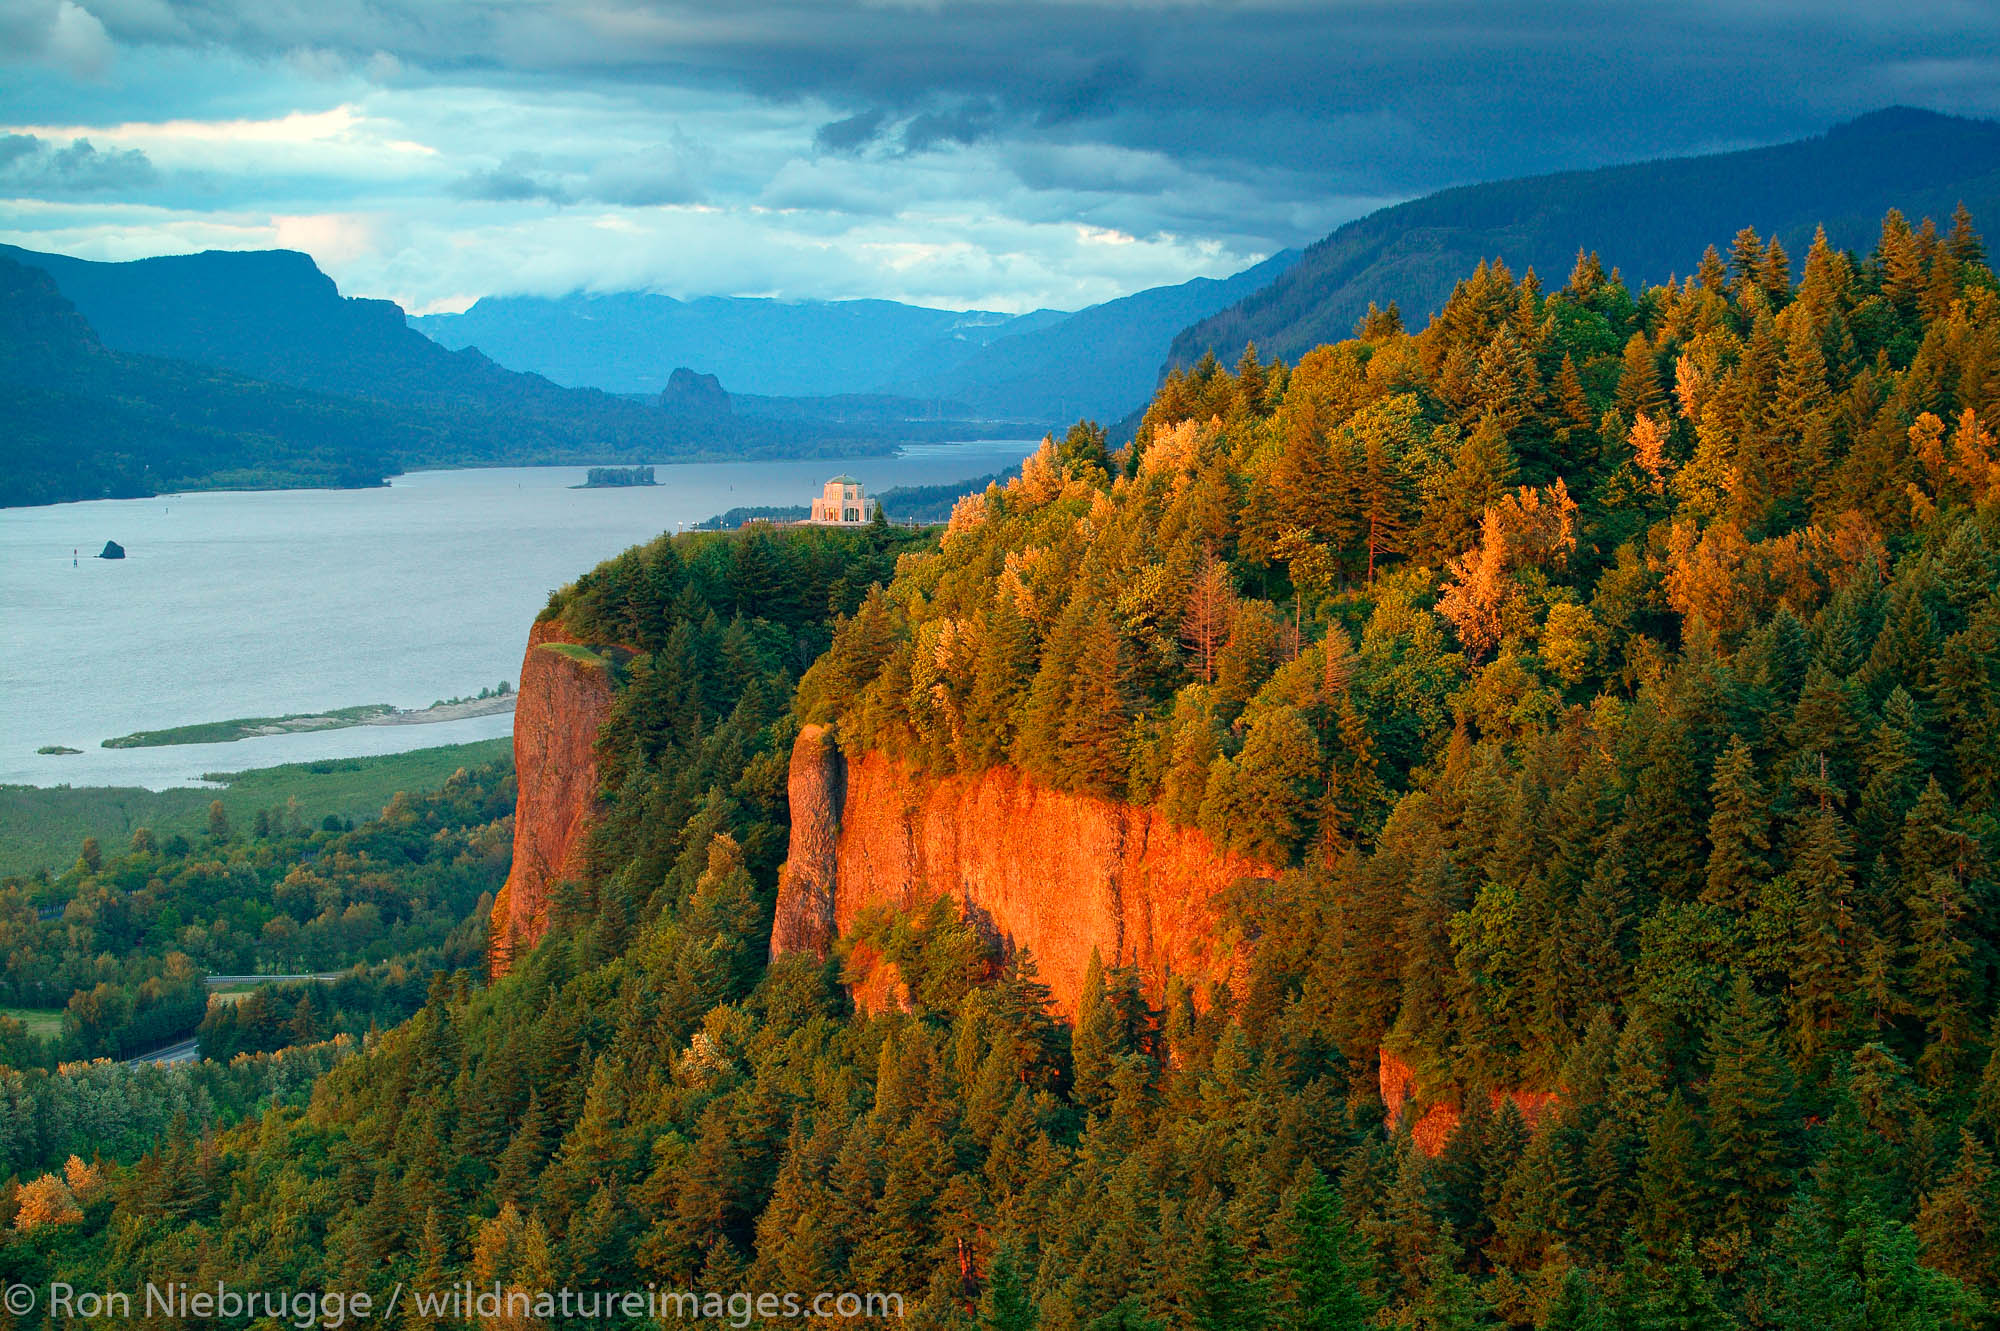 The Vista House, Crown Point State park, Historic, Columbia River Highway, Columbia River Gorge National Scenic Area, Oregon, photo